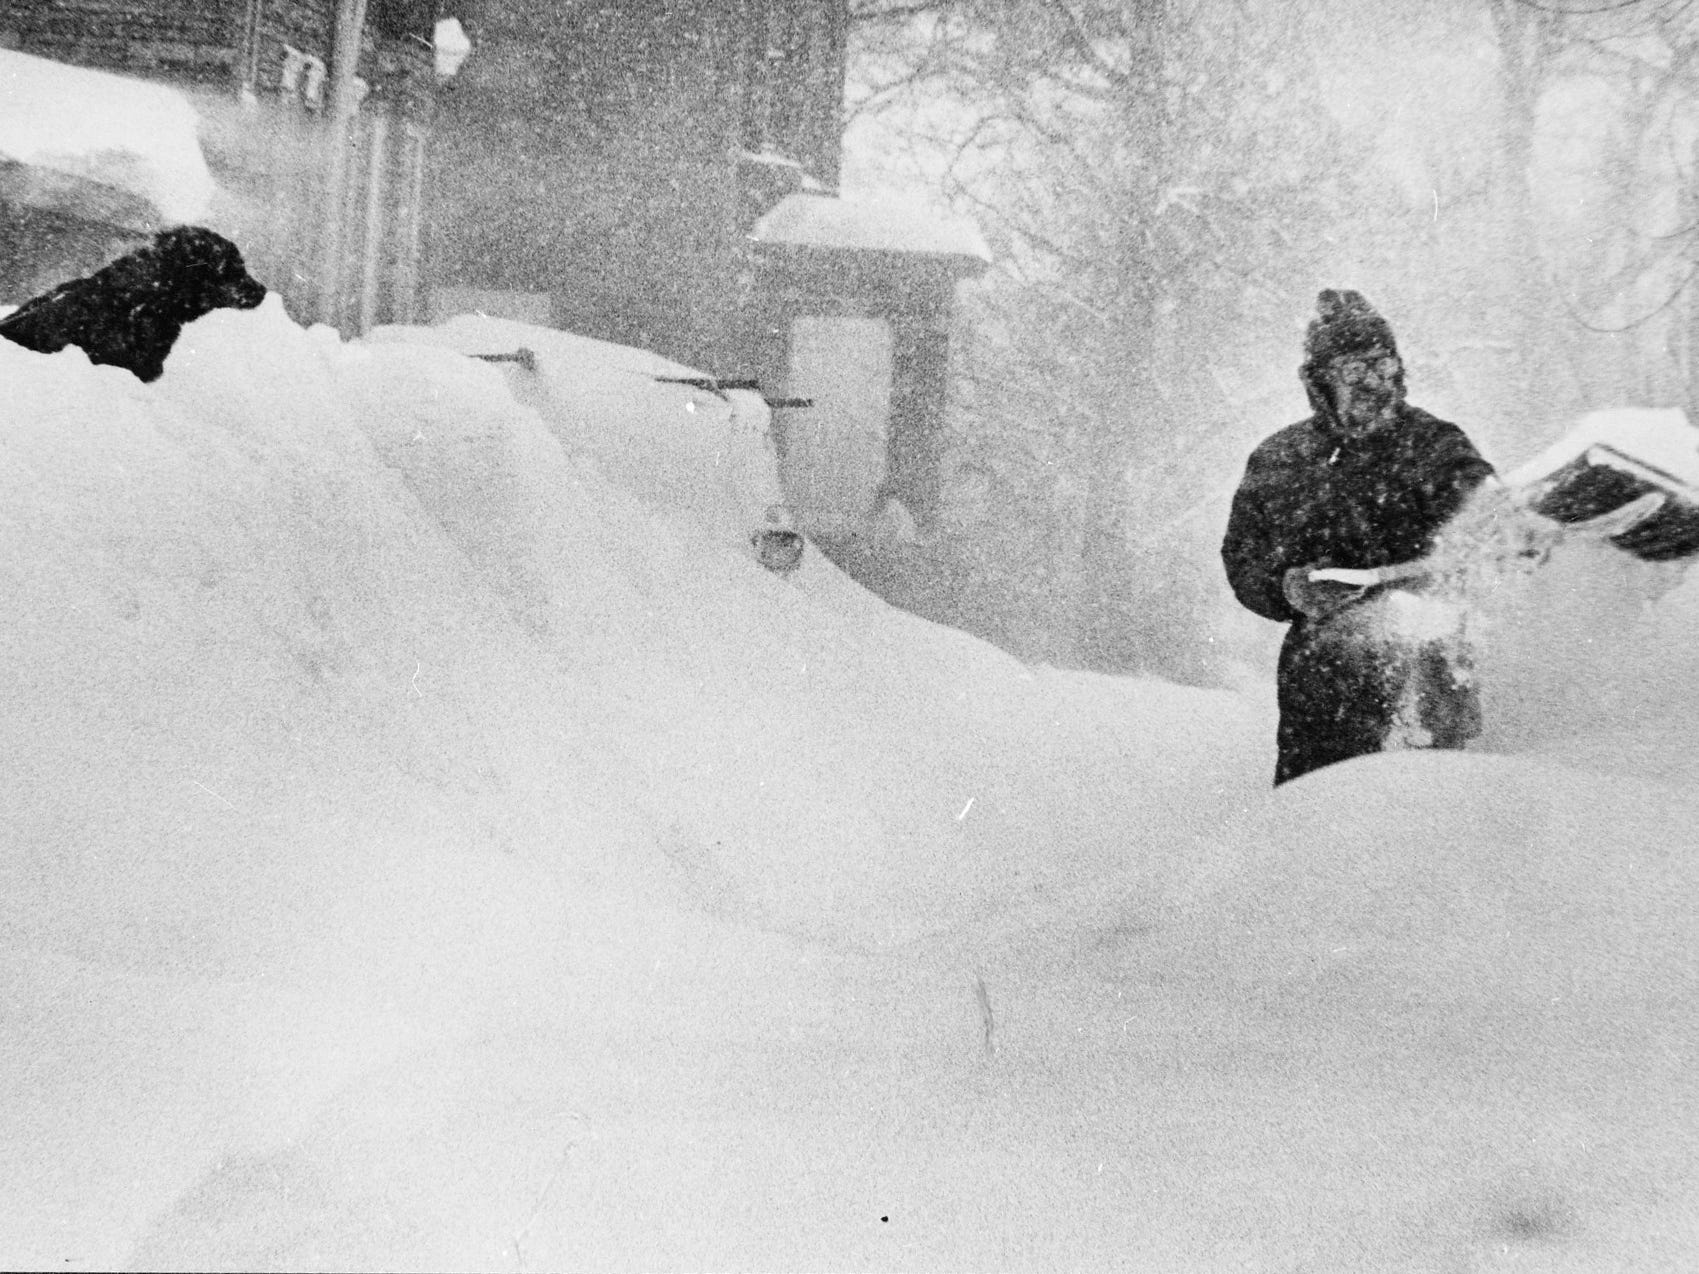 Mike Nolan gets some moral support from his dog, Oliver, as he shovels out from yet another snowstorm on Jan. 24, 1979, on West Park Hill Avenue. The storm piled onto the already 33 inches of snow on the ground, thanks largely to  two blizzards that each dumped more than 14 inches of snow on Milwaukee. This photo was published in the Jan. 24, 1979, Milwaukee Journal.